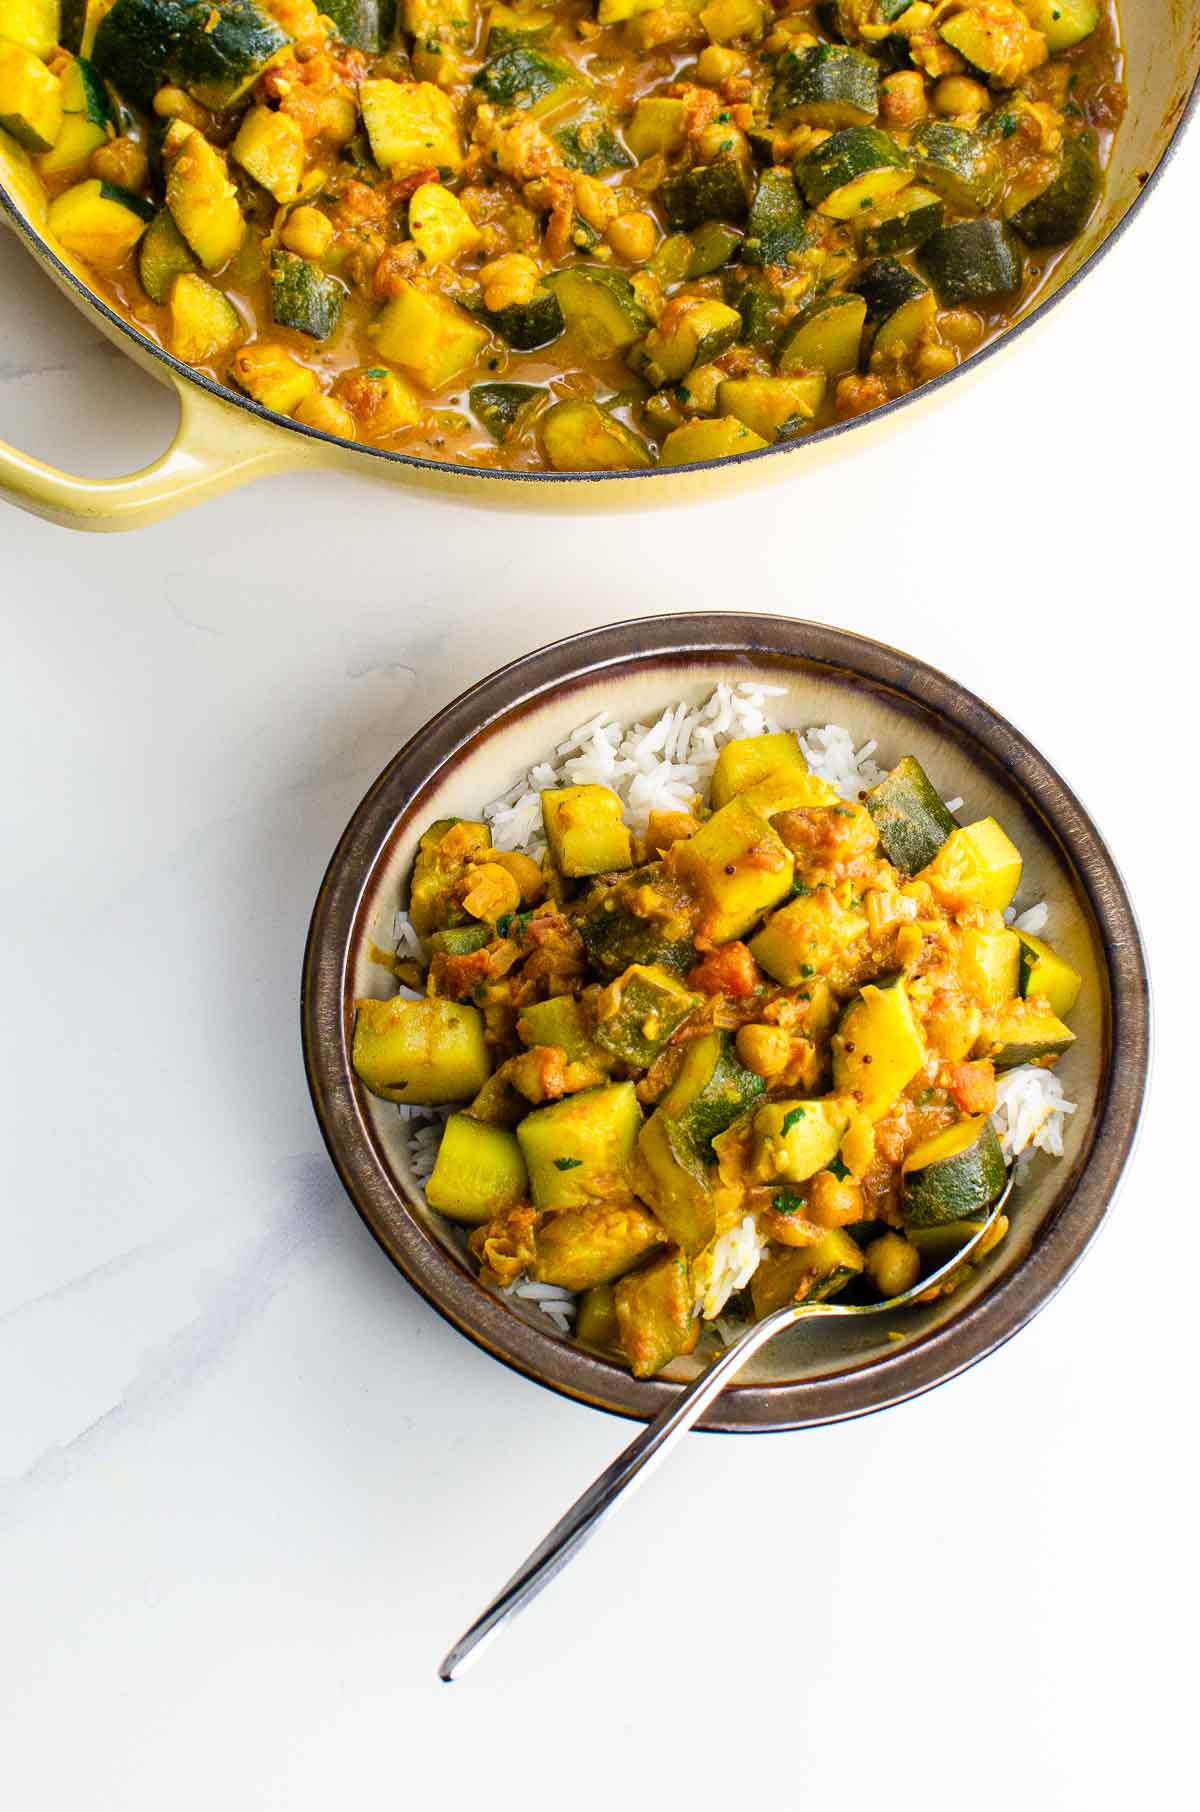 Zucchini curry with chickpeas